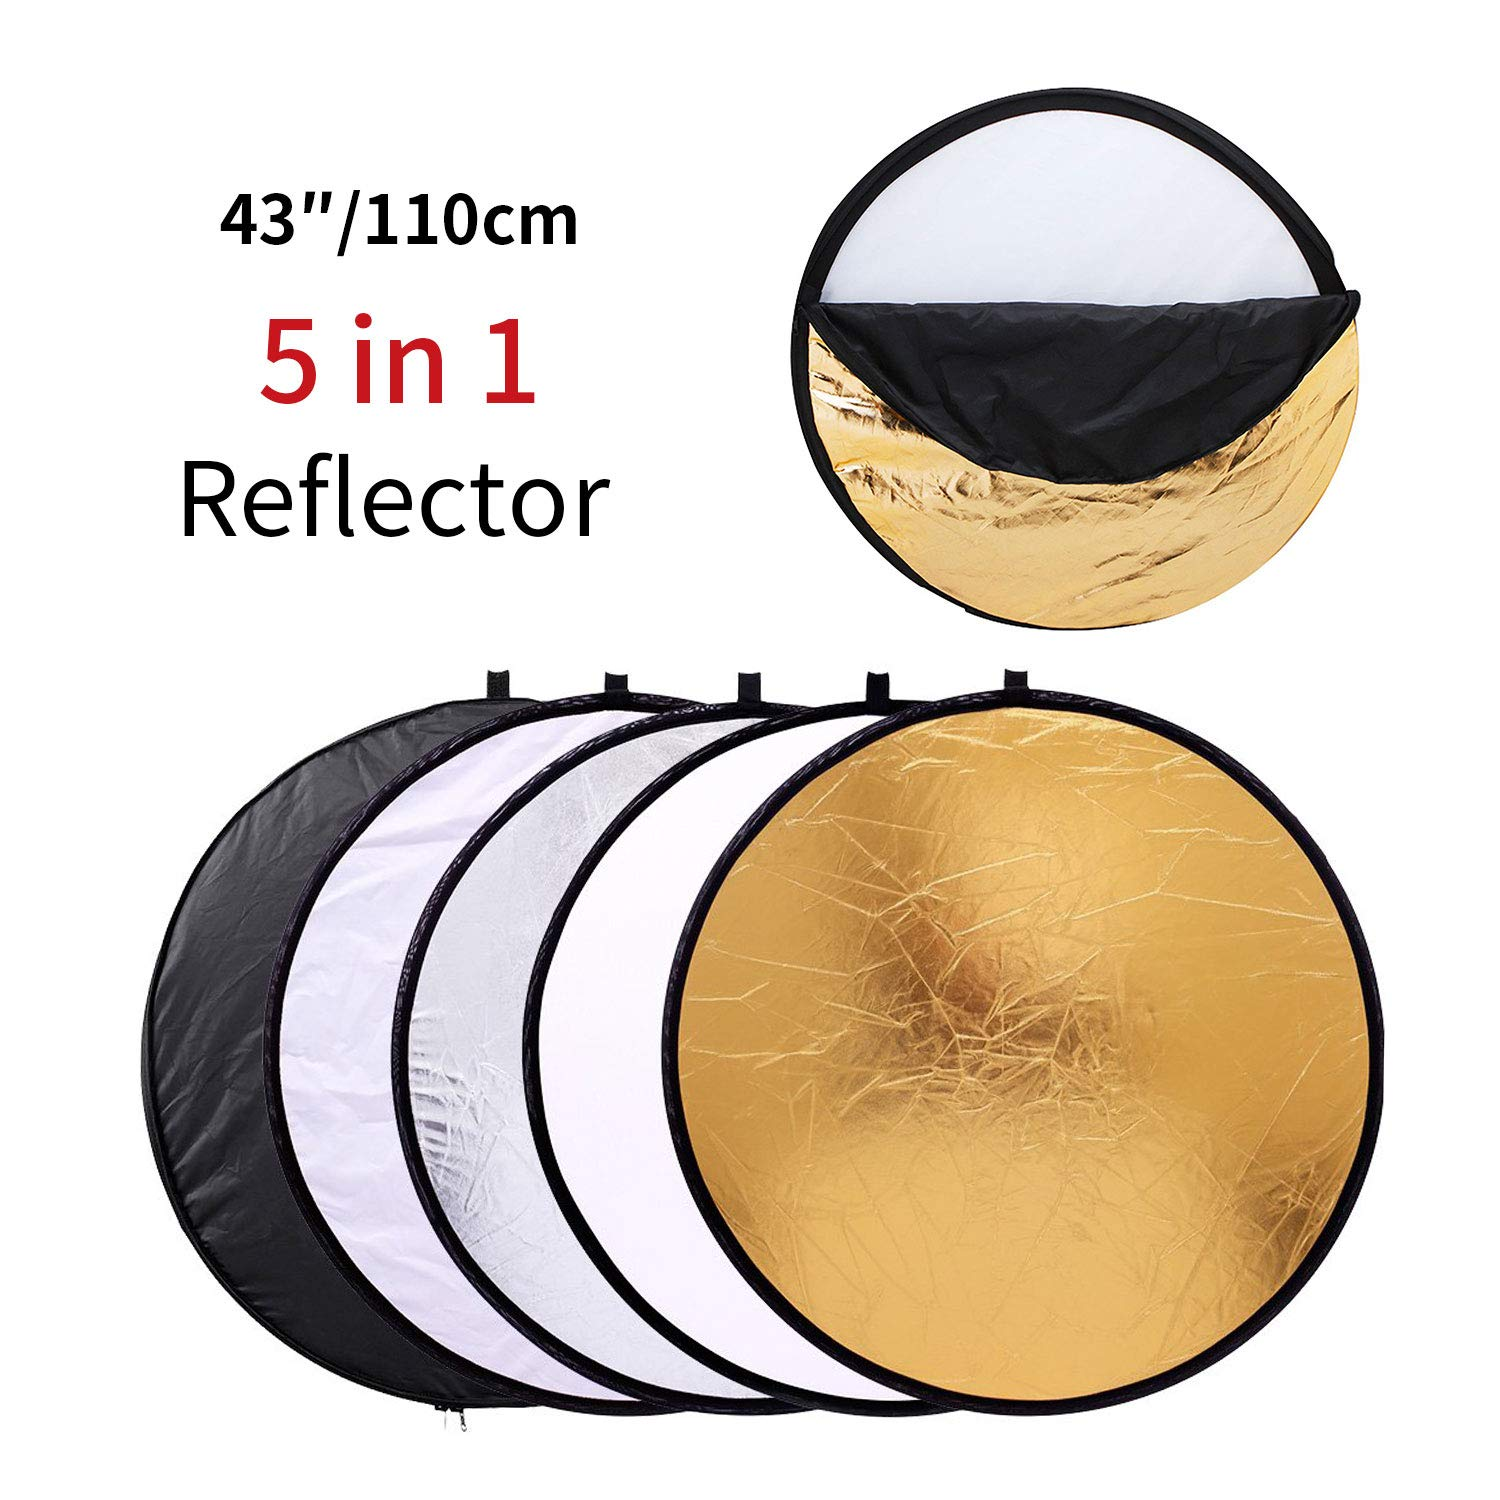 MOUNTDOG 43''/110cm Photography Reflector Photo Video Studio Multi Collapsible Disc 5-in-1 Lighting Reflector for Softbox Lighting Portable Collapsible Light Reflector by MOUNTDOG